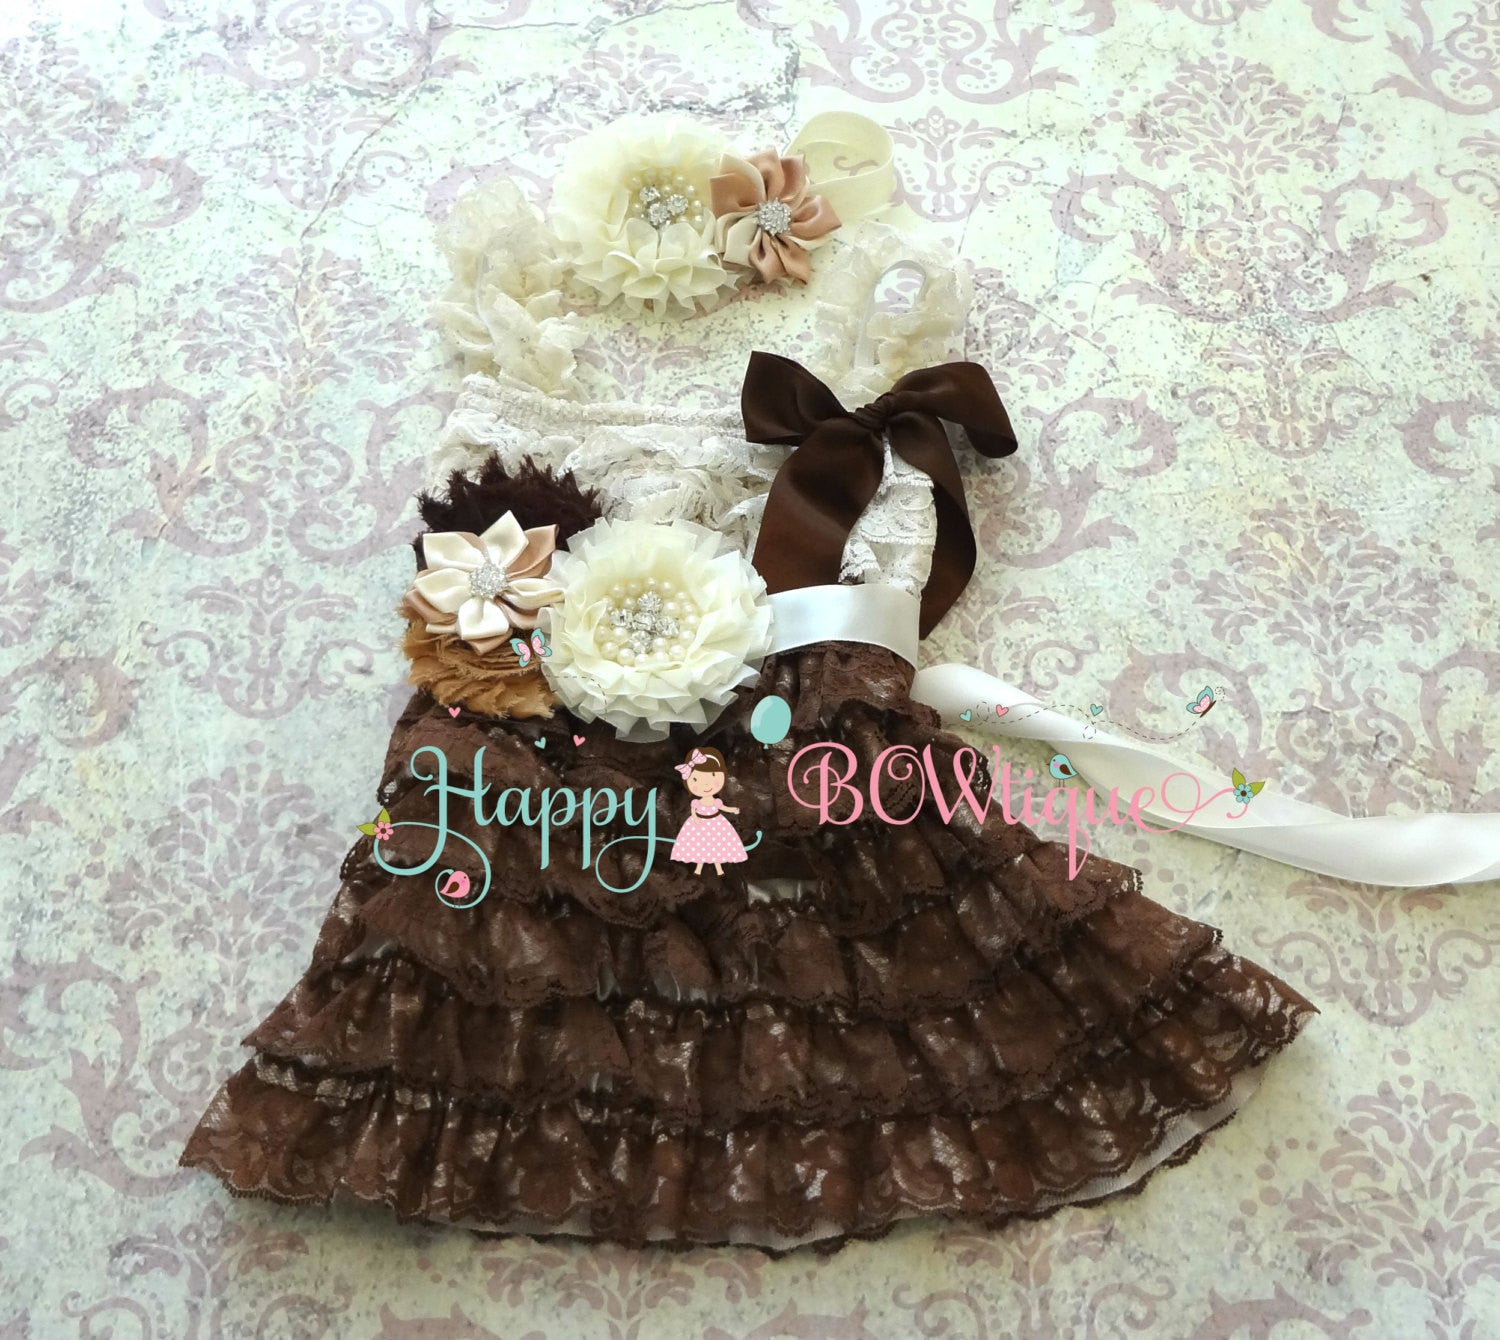 Country Flower girls dress/ Girl's Rustic Chocolate Beige Lace Dress set - Happy BOWtique - children's clothing, Baby Girl clothing